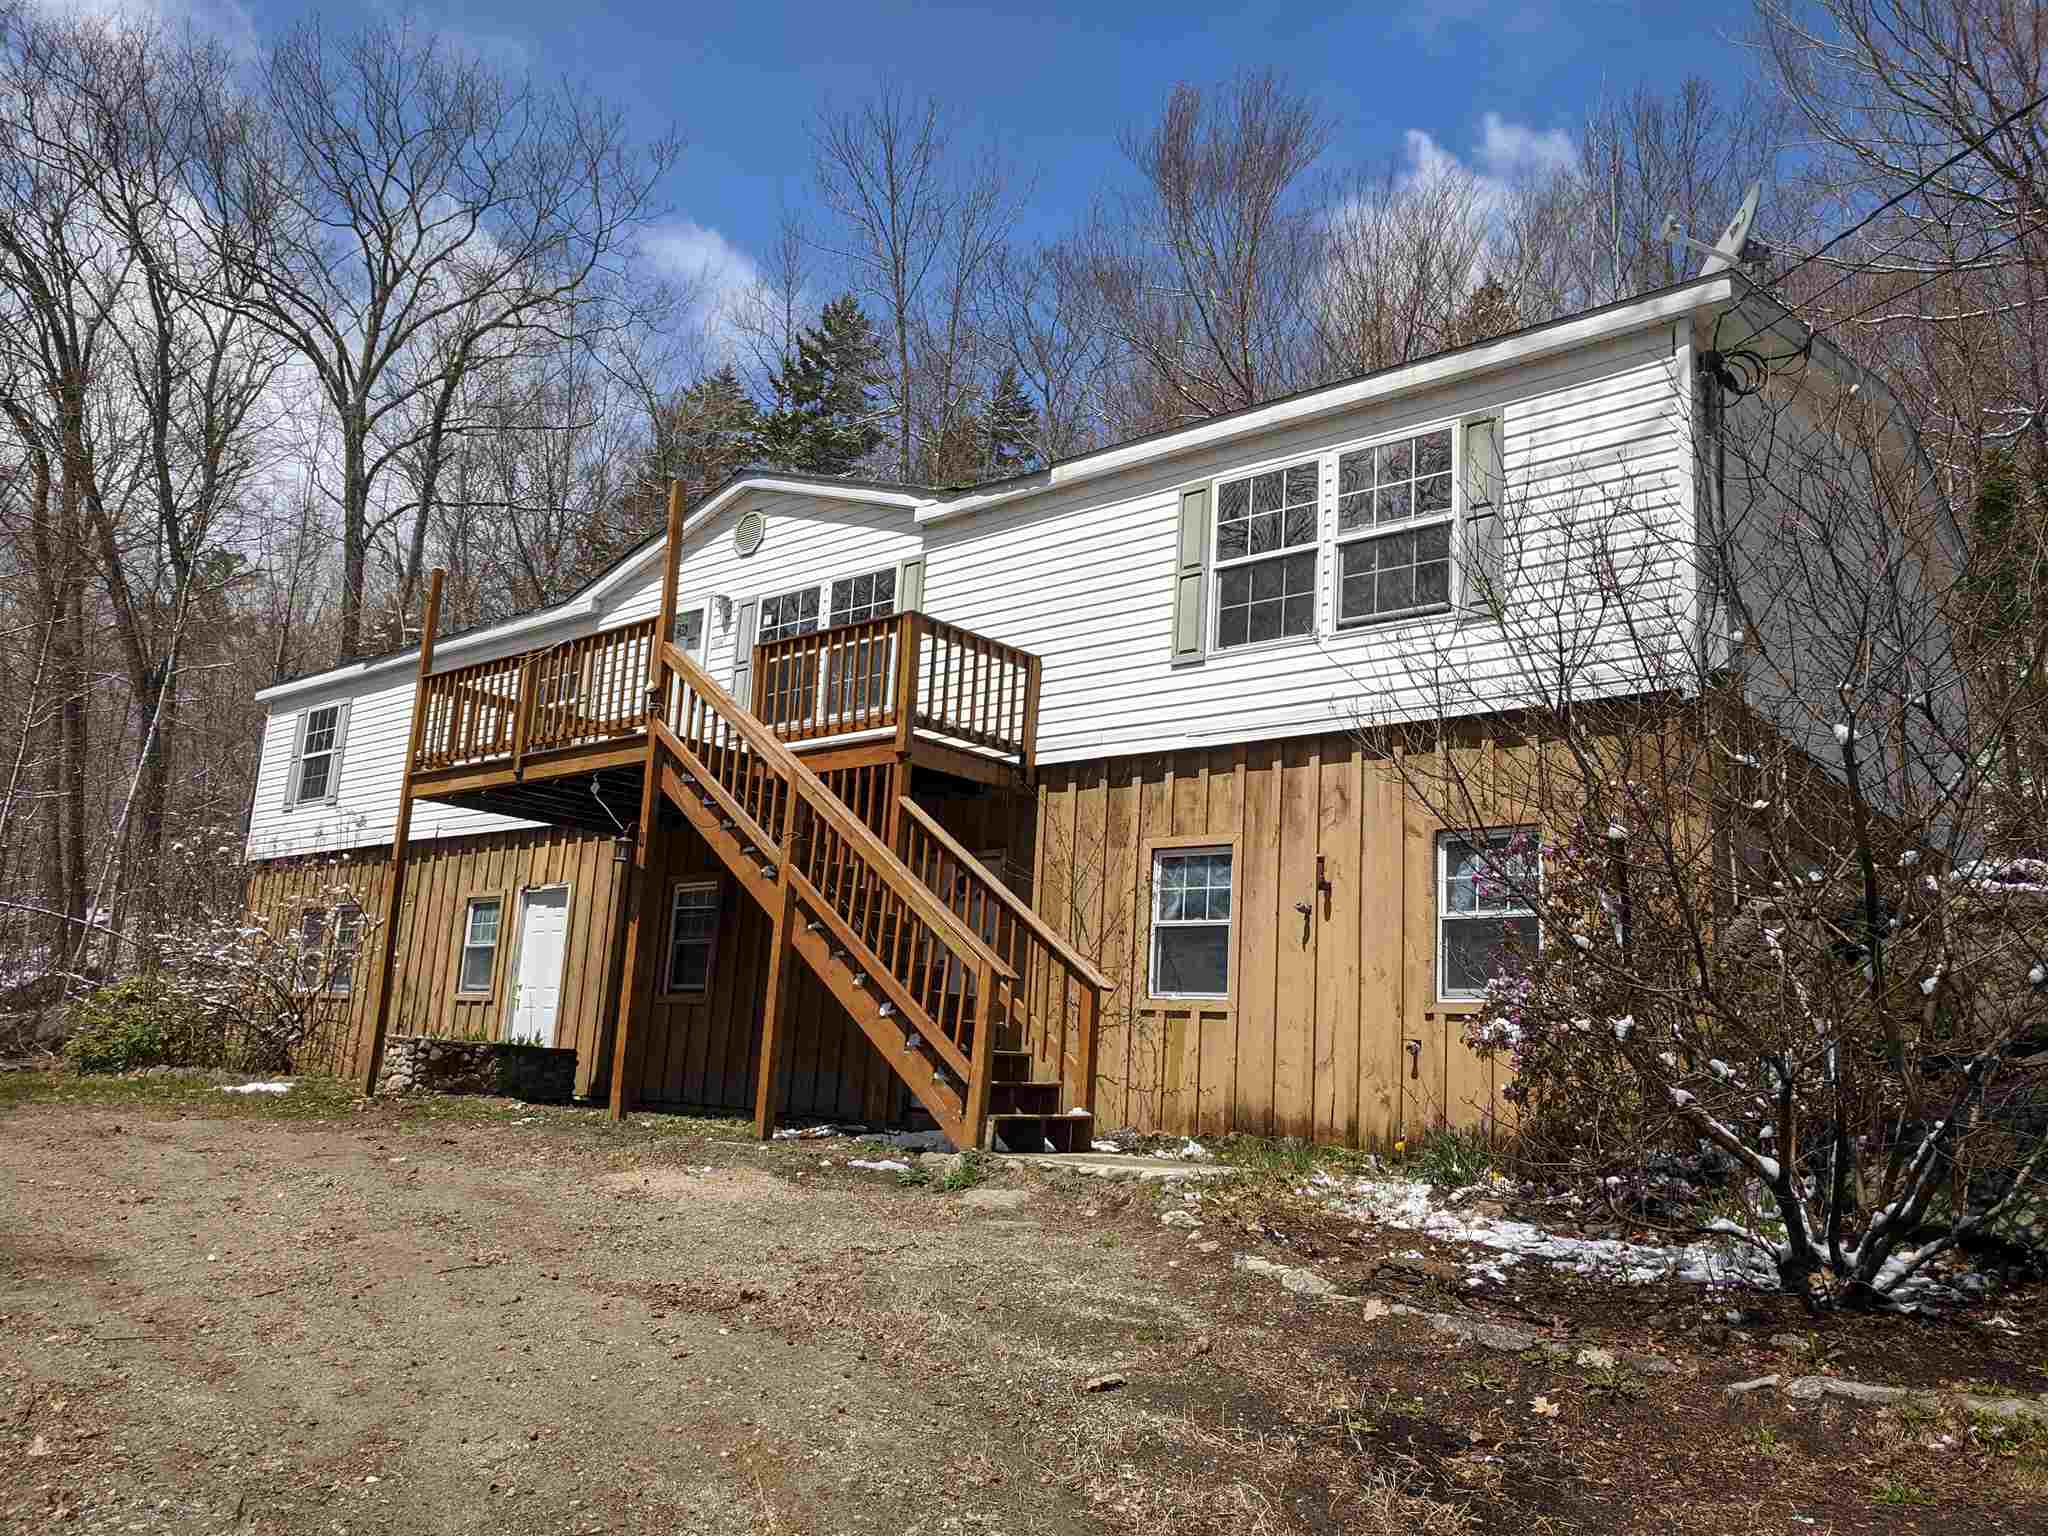 MLS 4811492: 1336 Washburn Road, Alexandria NH